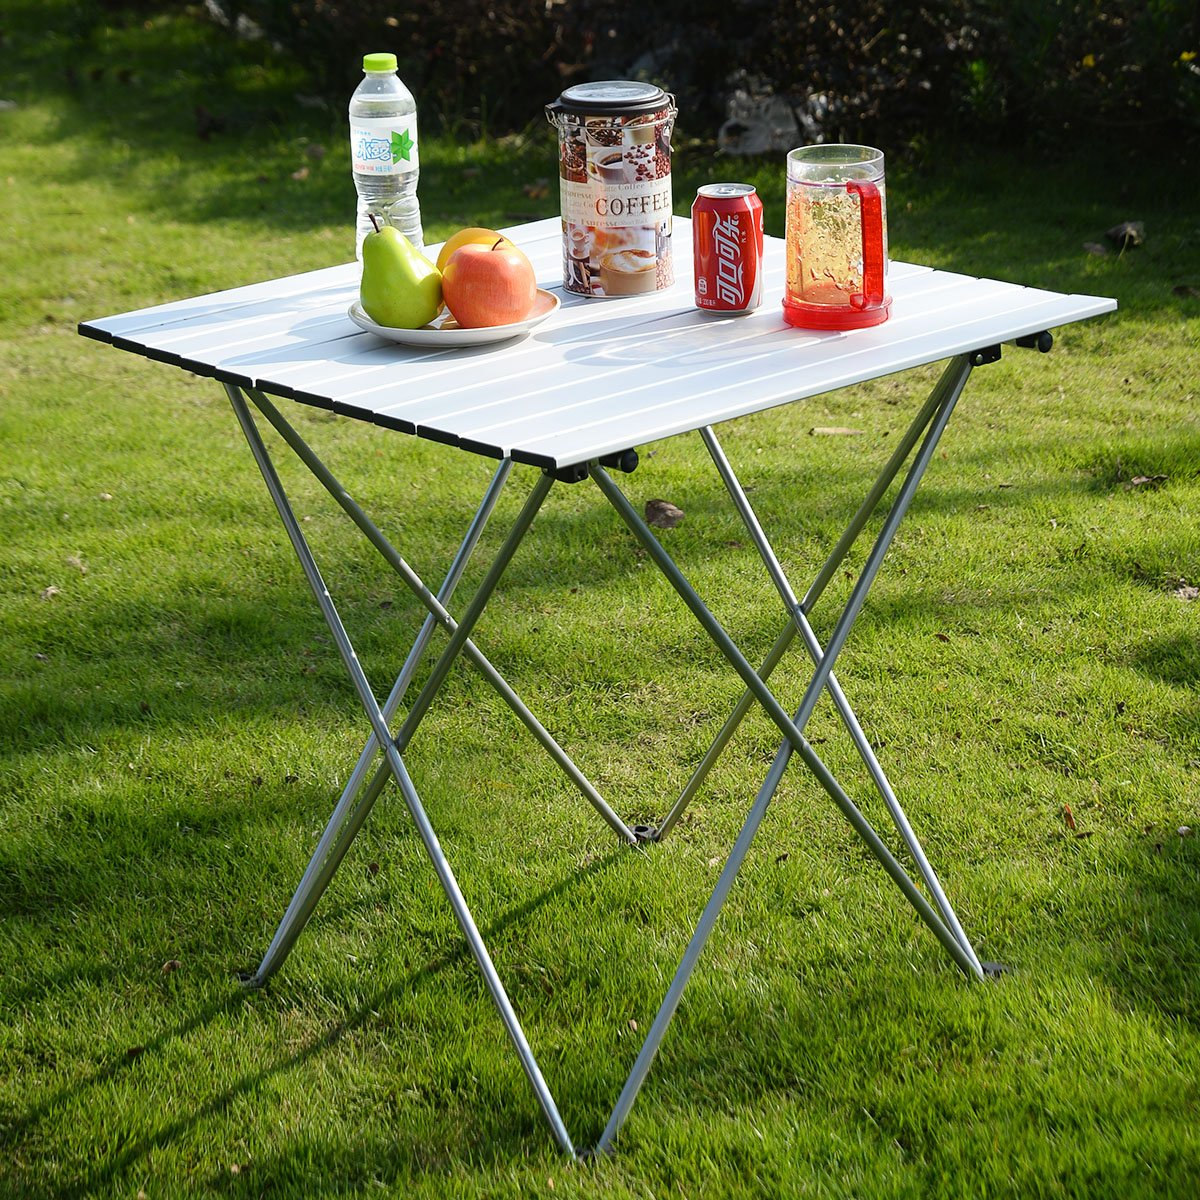 New Aluminum Roll Up Table Folding Camping Outdoor Indoor Picnic W/ Bag Heavy Duty